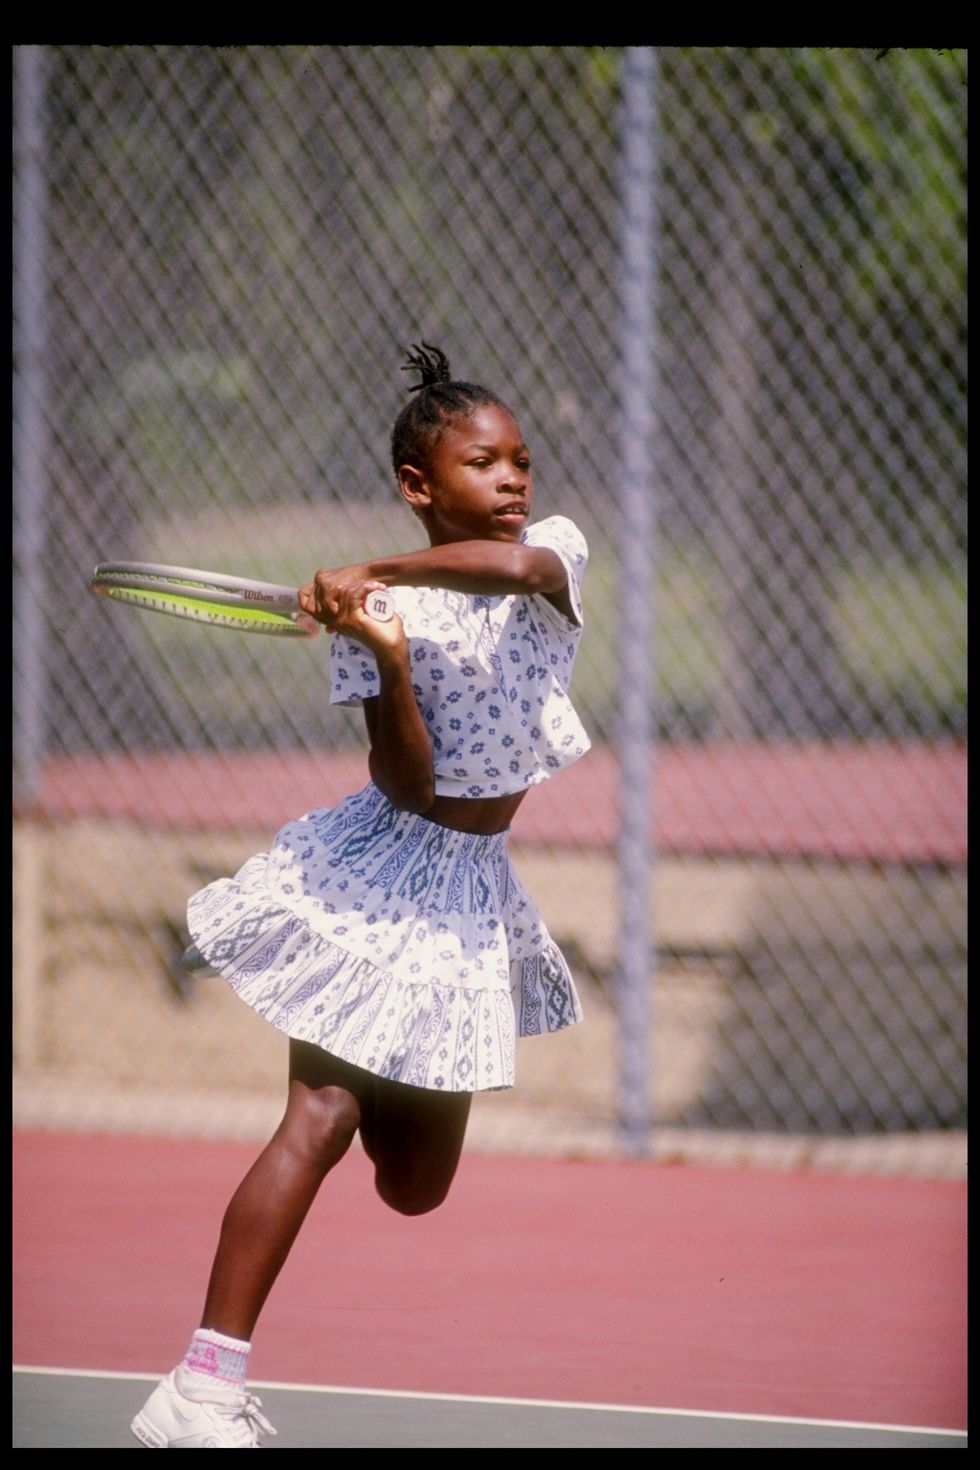 Top 10 Best Serena Williams's Tennis Outfits Of All Time